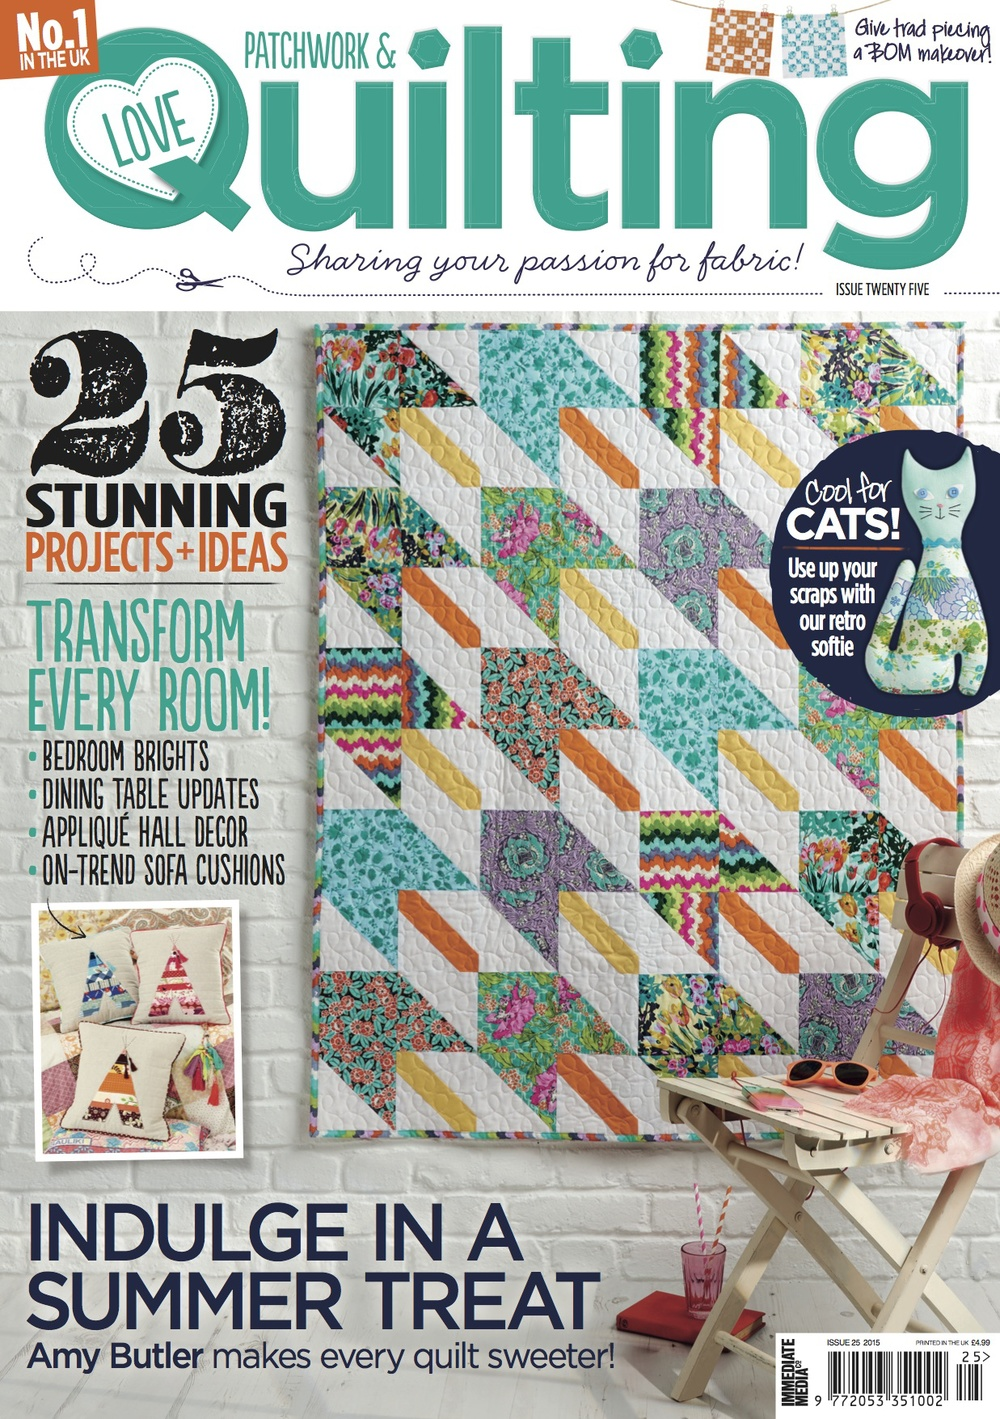 August 2015 - Love Patchwork and Quilting Magazine - Issue 25. News feature as new online business -